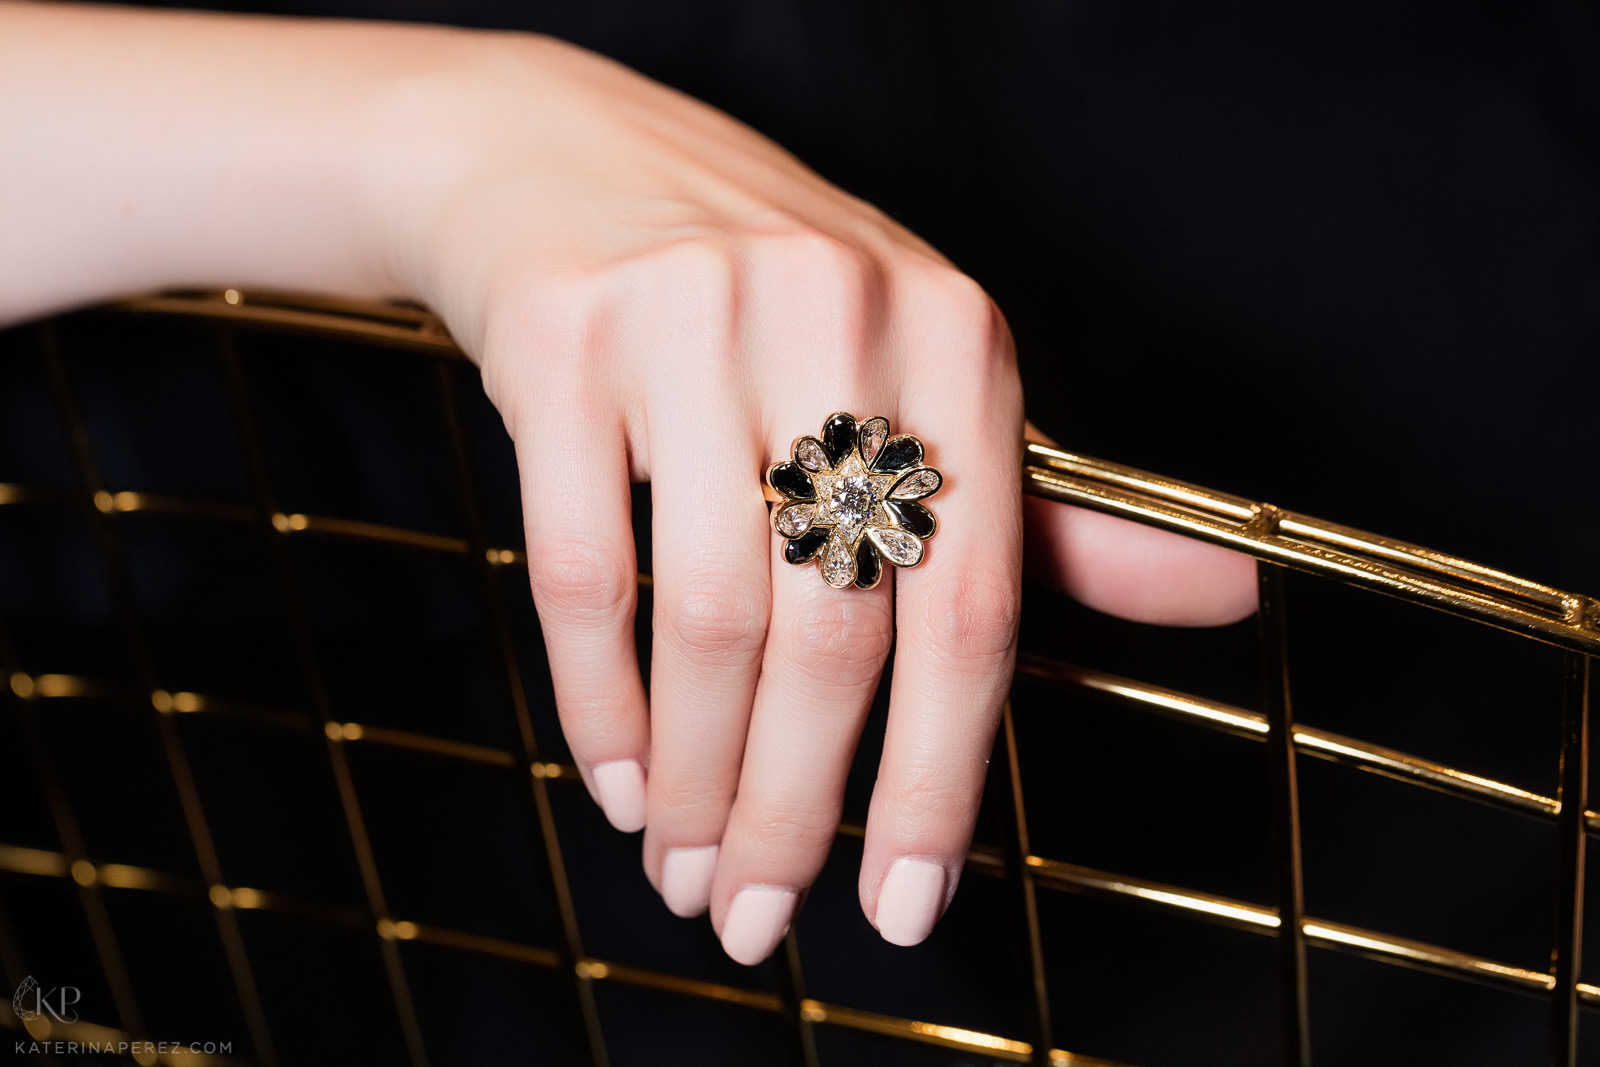 COUTURE show: the best jewellery studded with diamonds